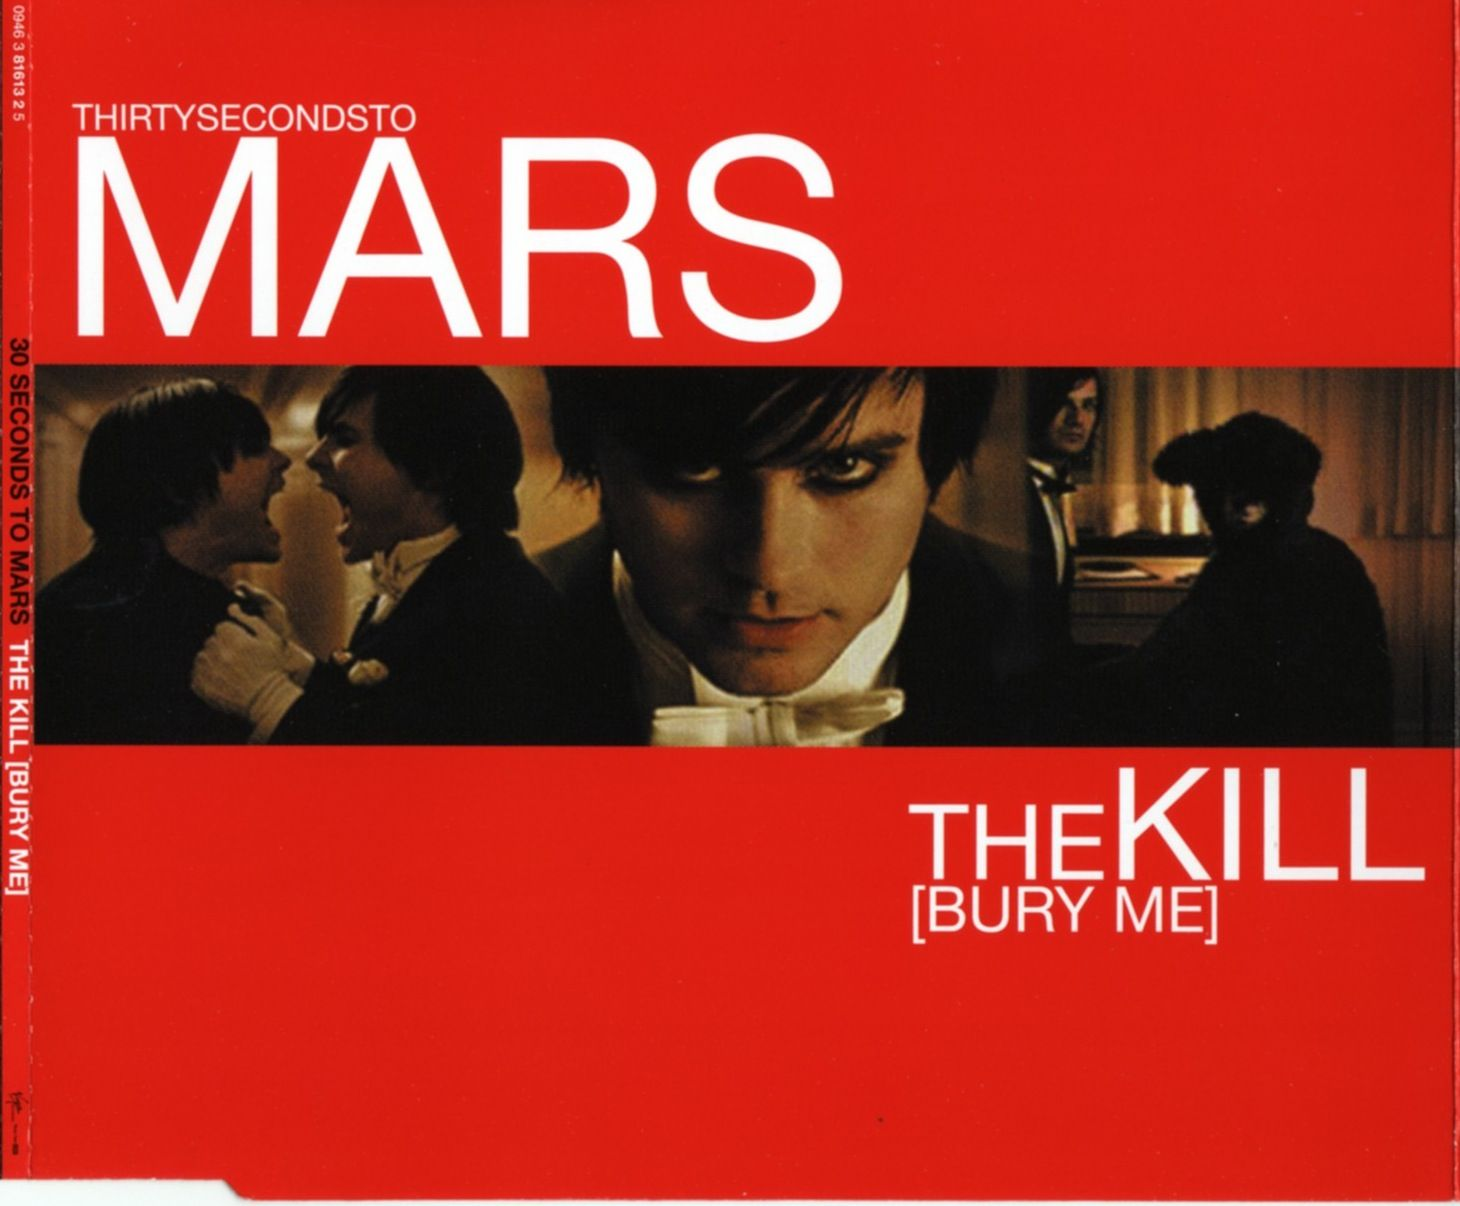 The Kill Written Along With The Subtitle Bury Me In